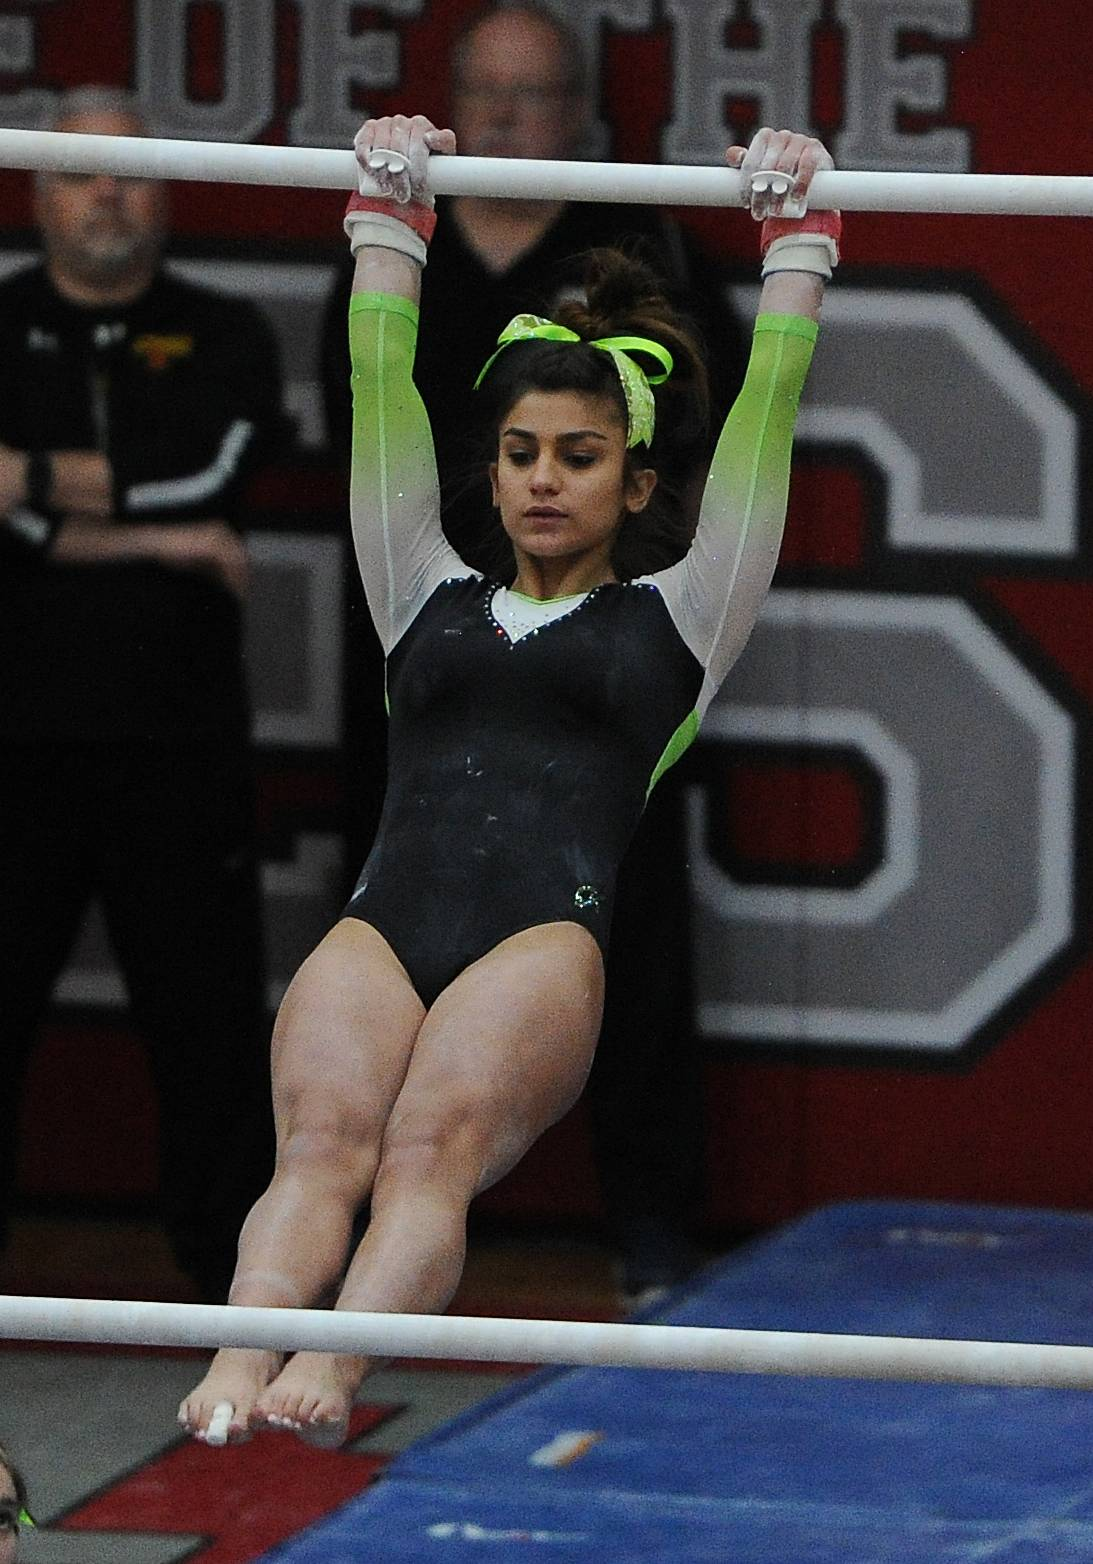 Fremd's Gianna Christodoulopoulos does her routine on the uneven parallel bars during the IHSA girls gymnastics preliminaries at Palatine High School on Friday.